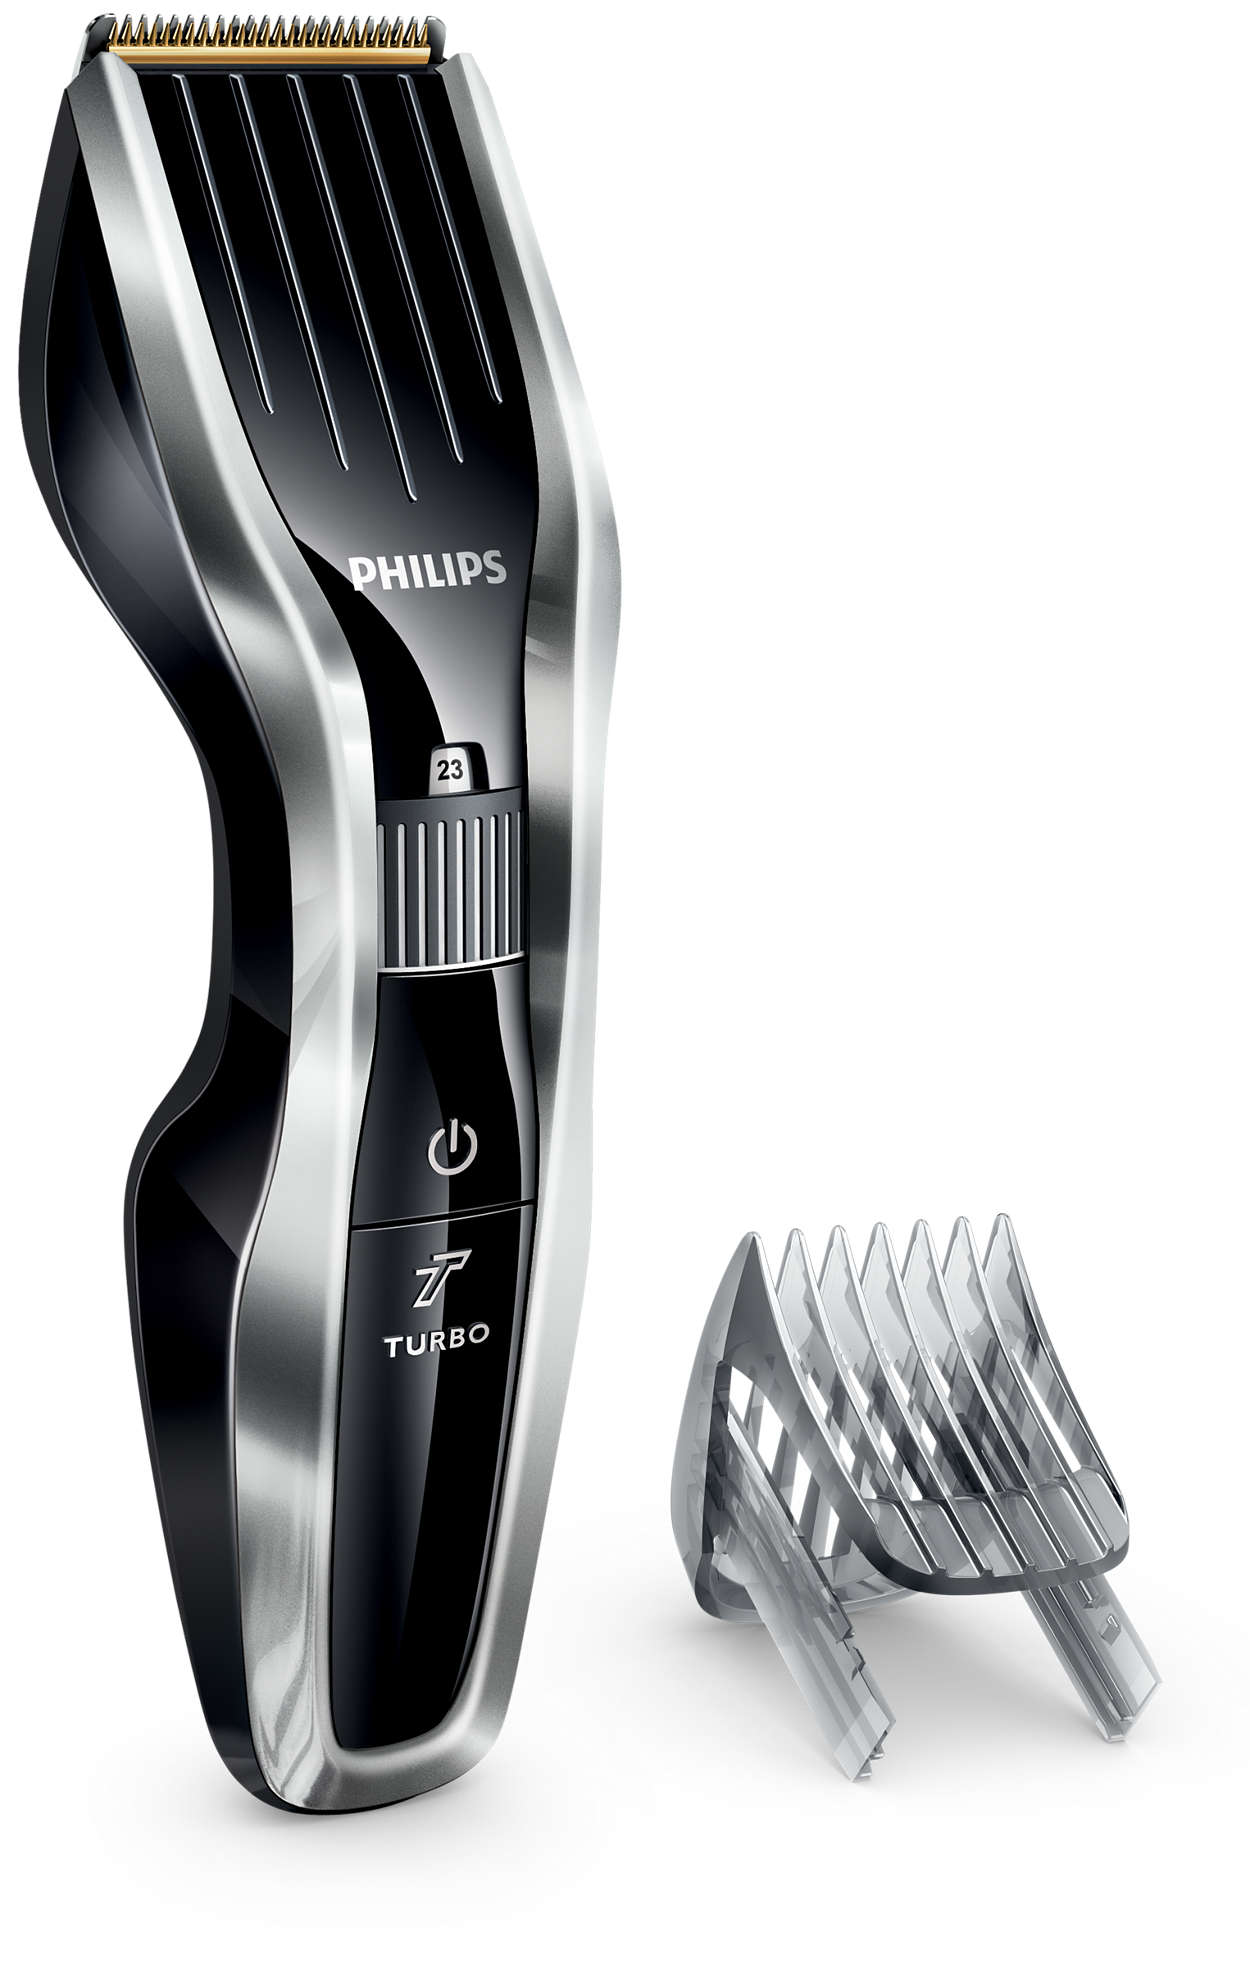 HAIRCLIPPER Series 5000 - Tunde de două ori mai rapid*